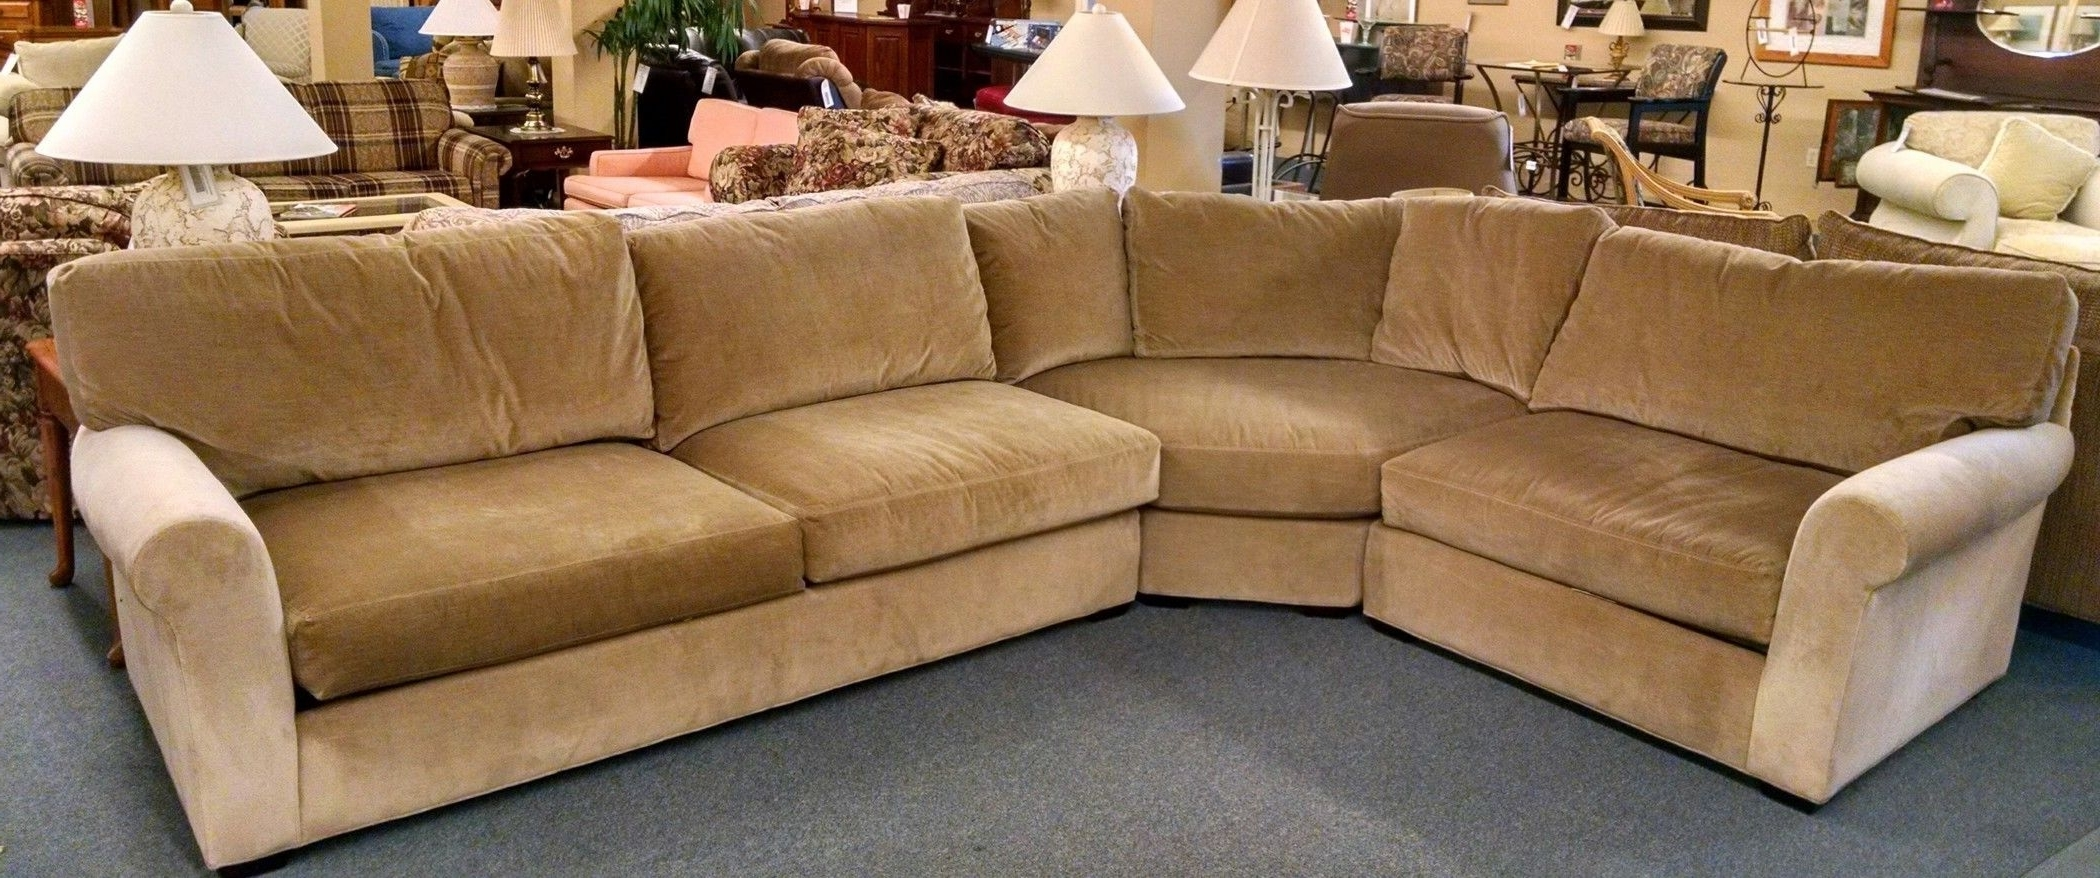 Delmarva Furniture Consignment Within Current Lee Industries Sectional Sofas (View 8 of 15)